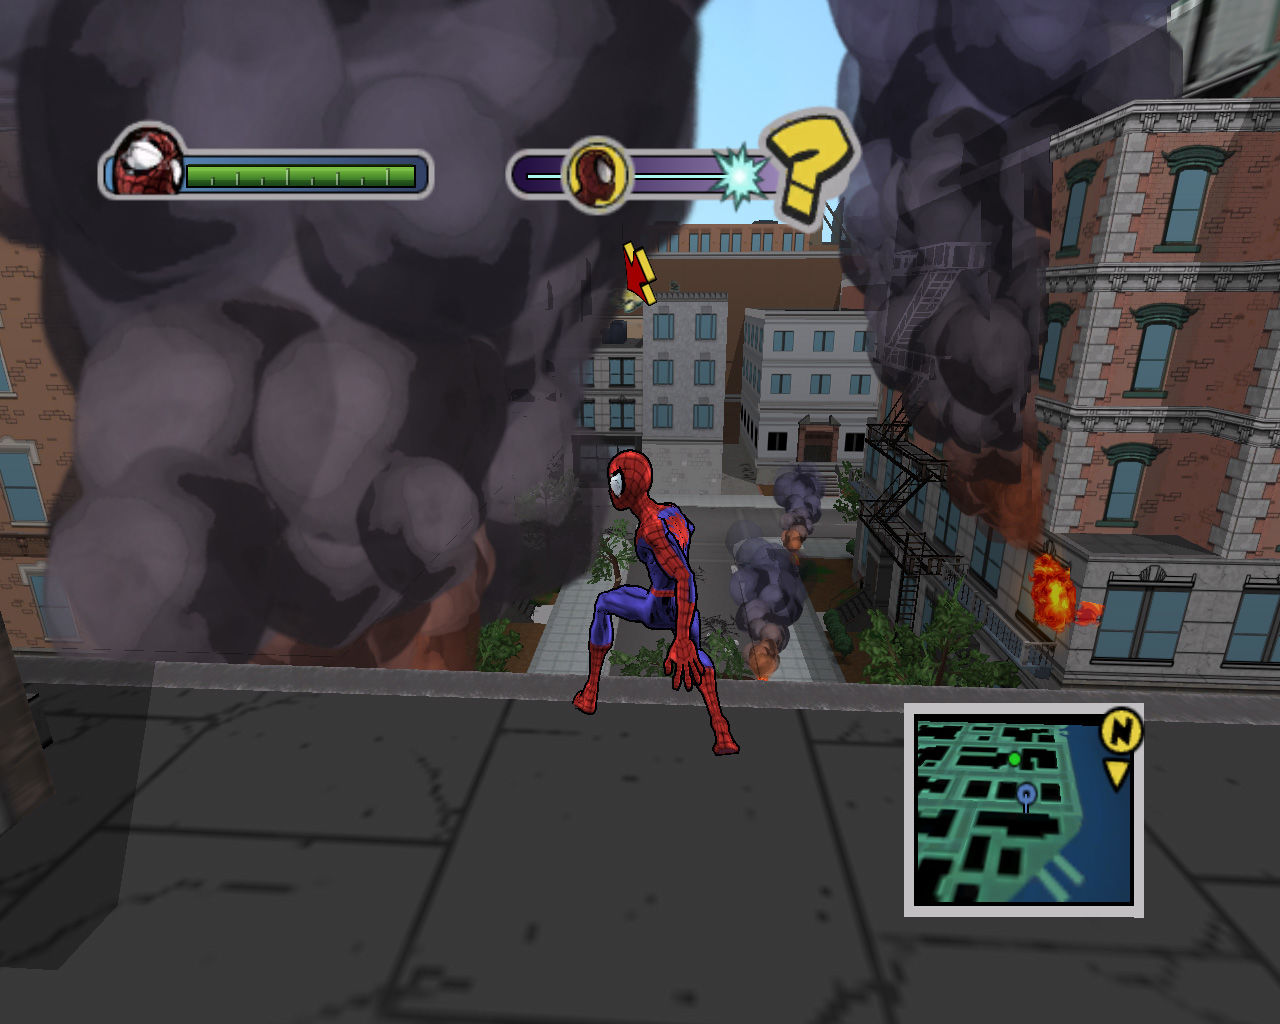 http://www.mobygames.com/images/shots/l/249715-ultimate-spider-man-windows-screenshot-following-rhino-s-trail.jpg